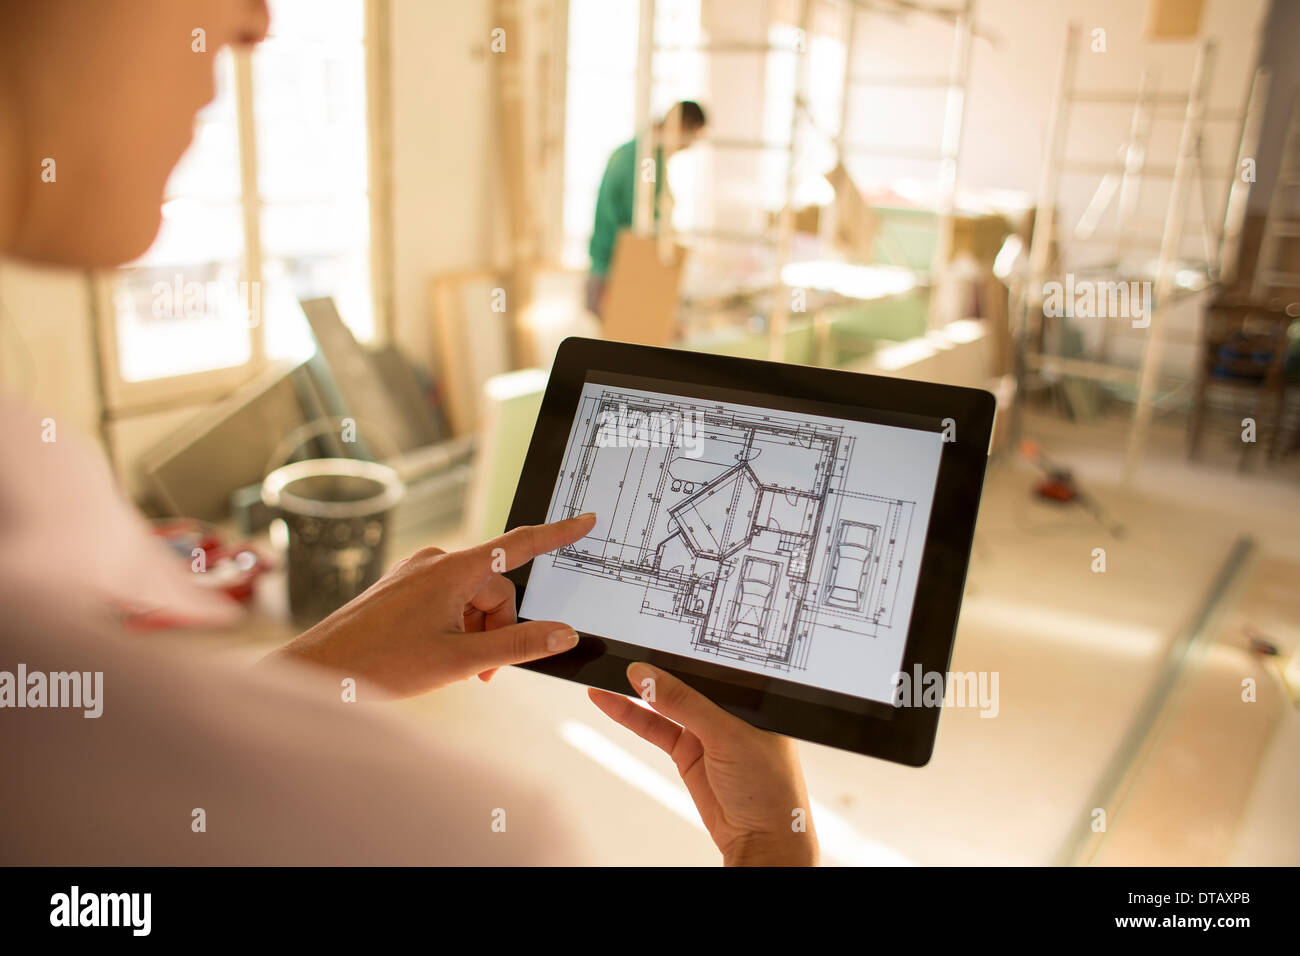 Architect woman working with electronic tablet on Construction site - Stock Image